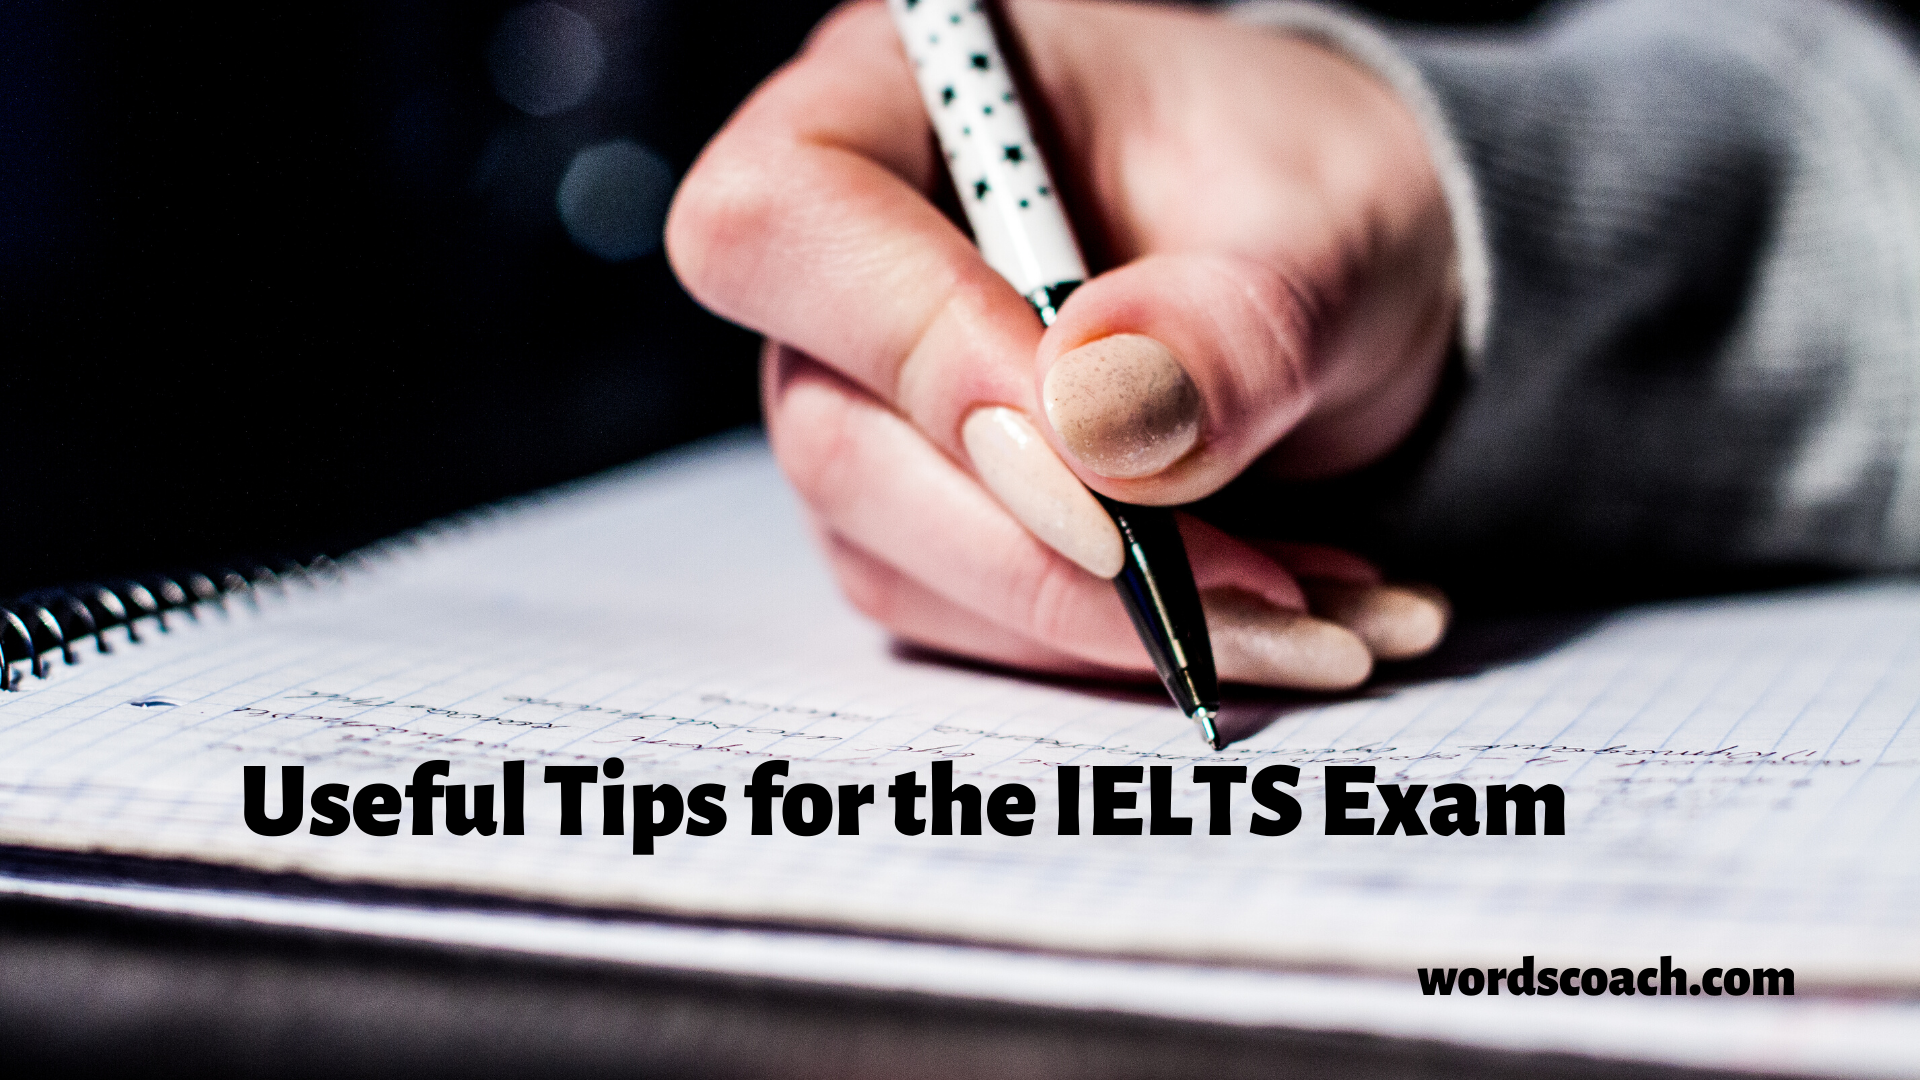 Useful tips for every section of the IELTS exam